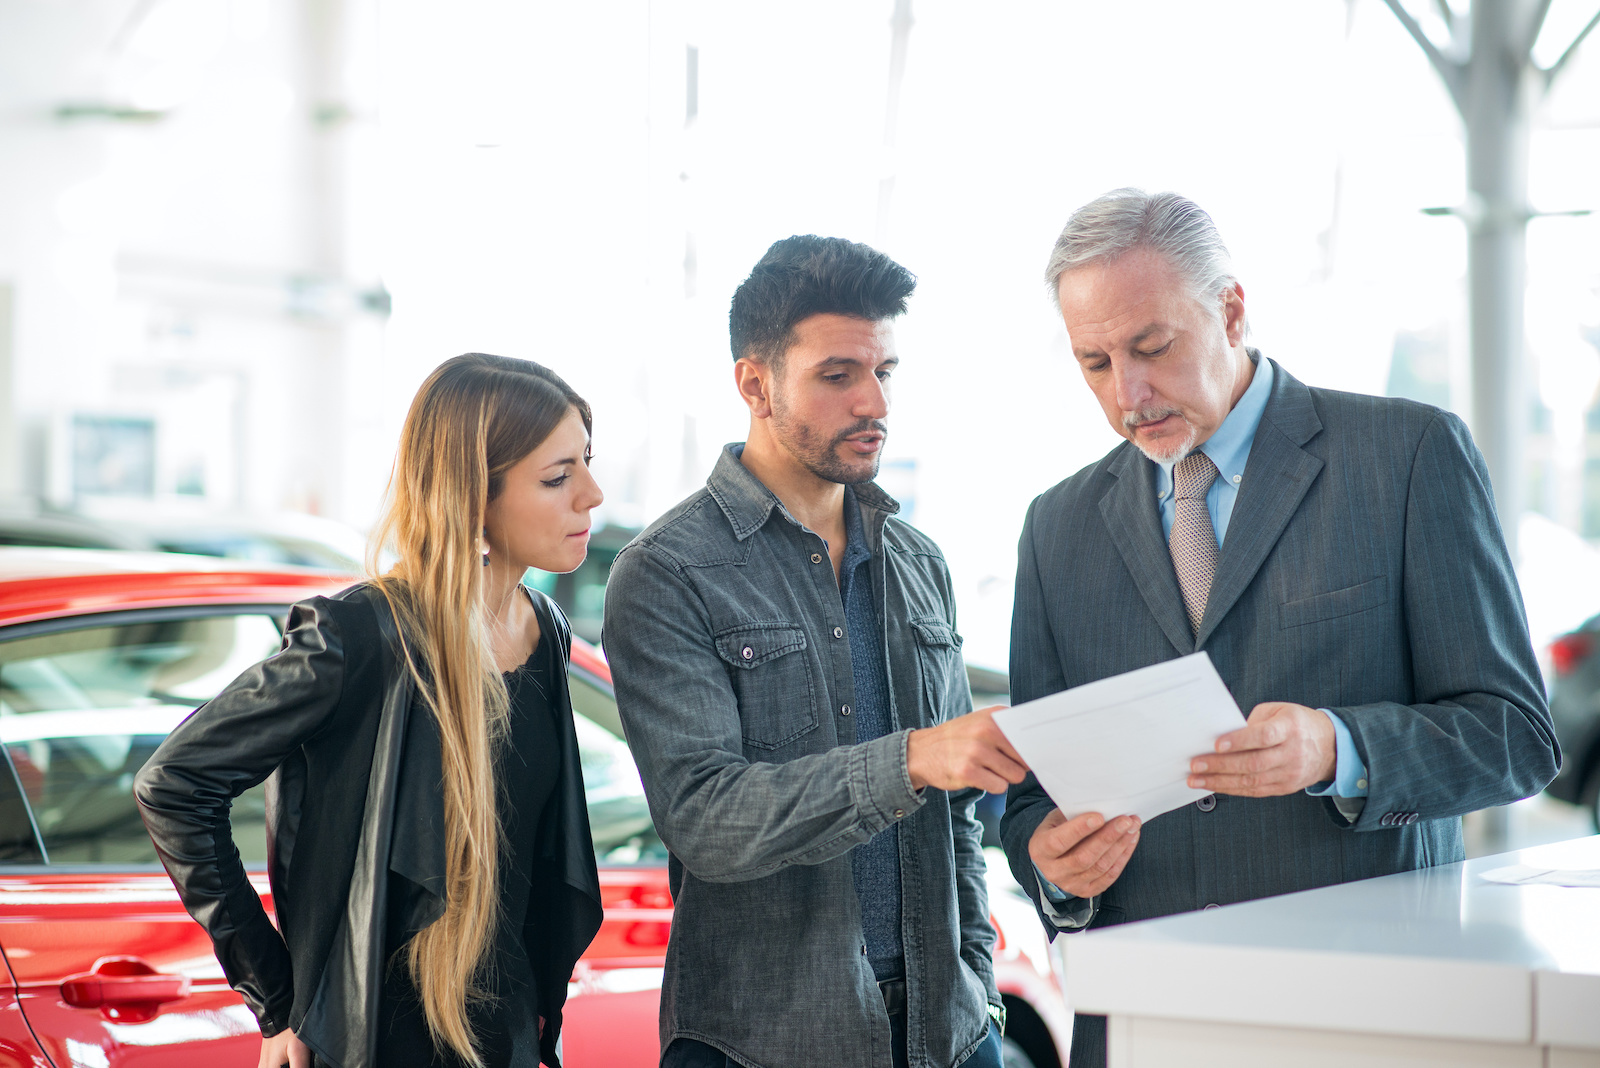 Installment loans for bad credit: A young couple looks at auto loan terms at a car dealership